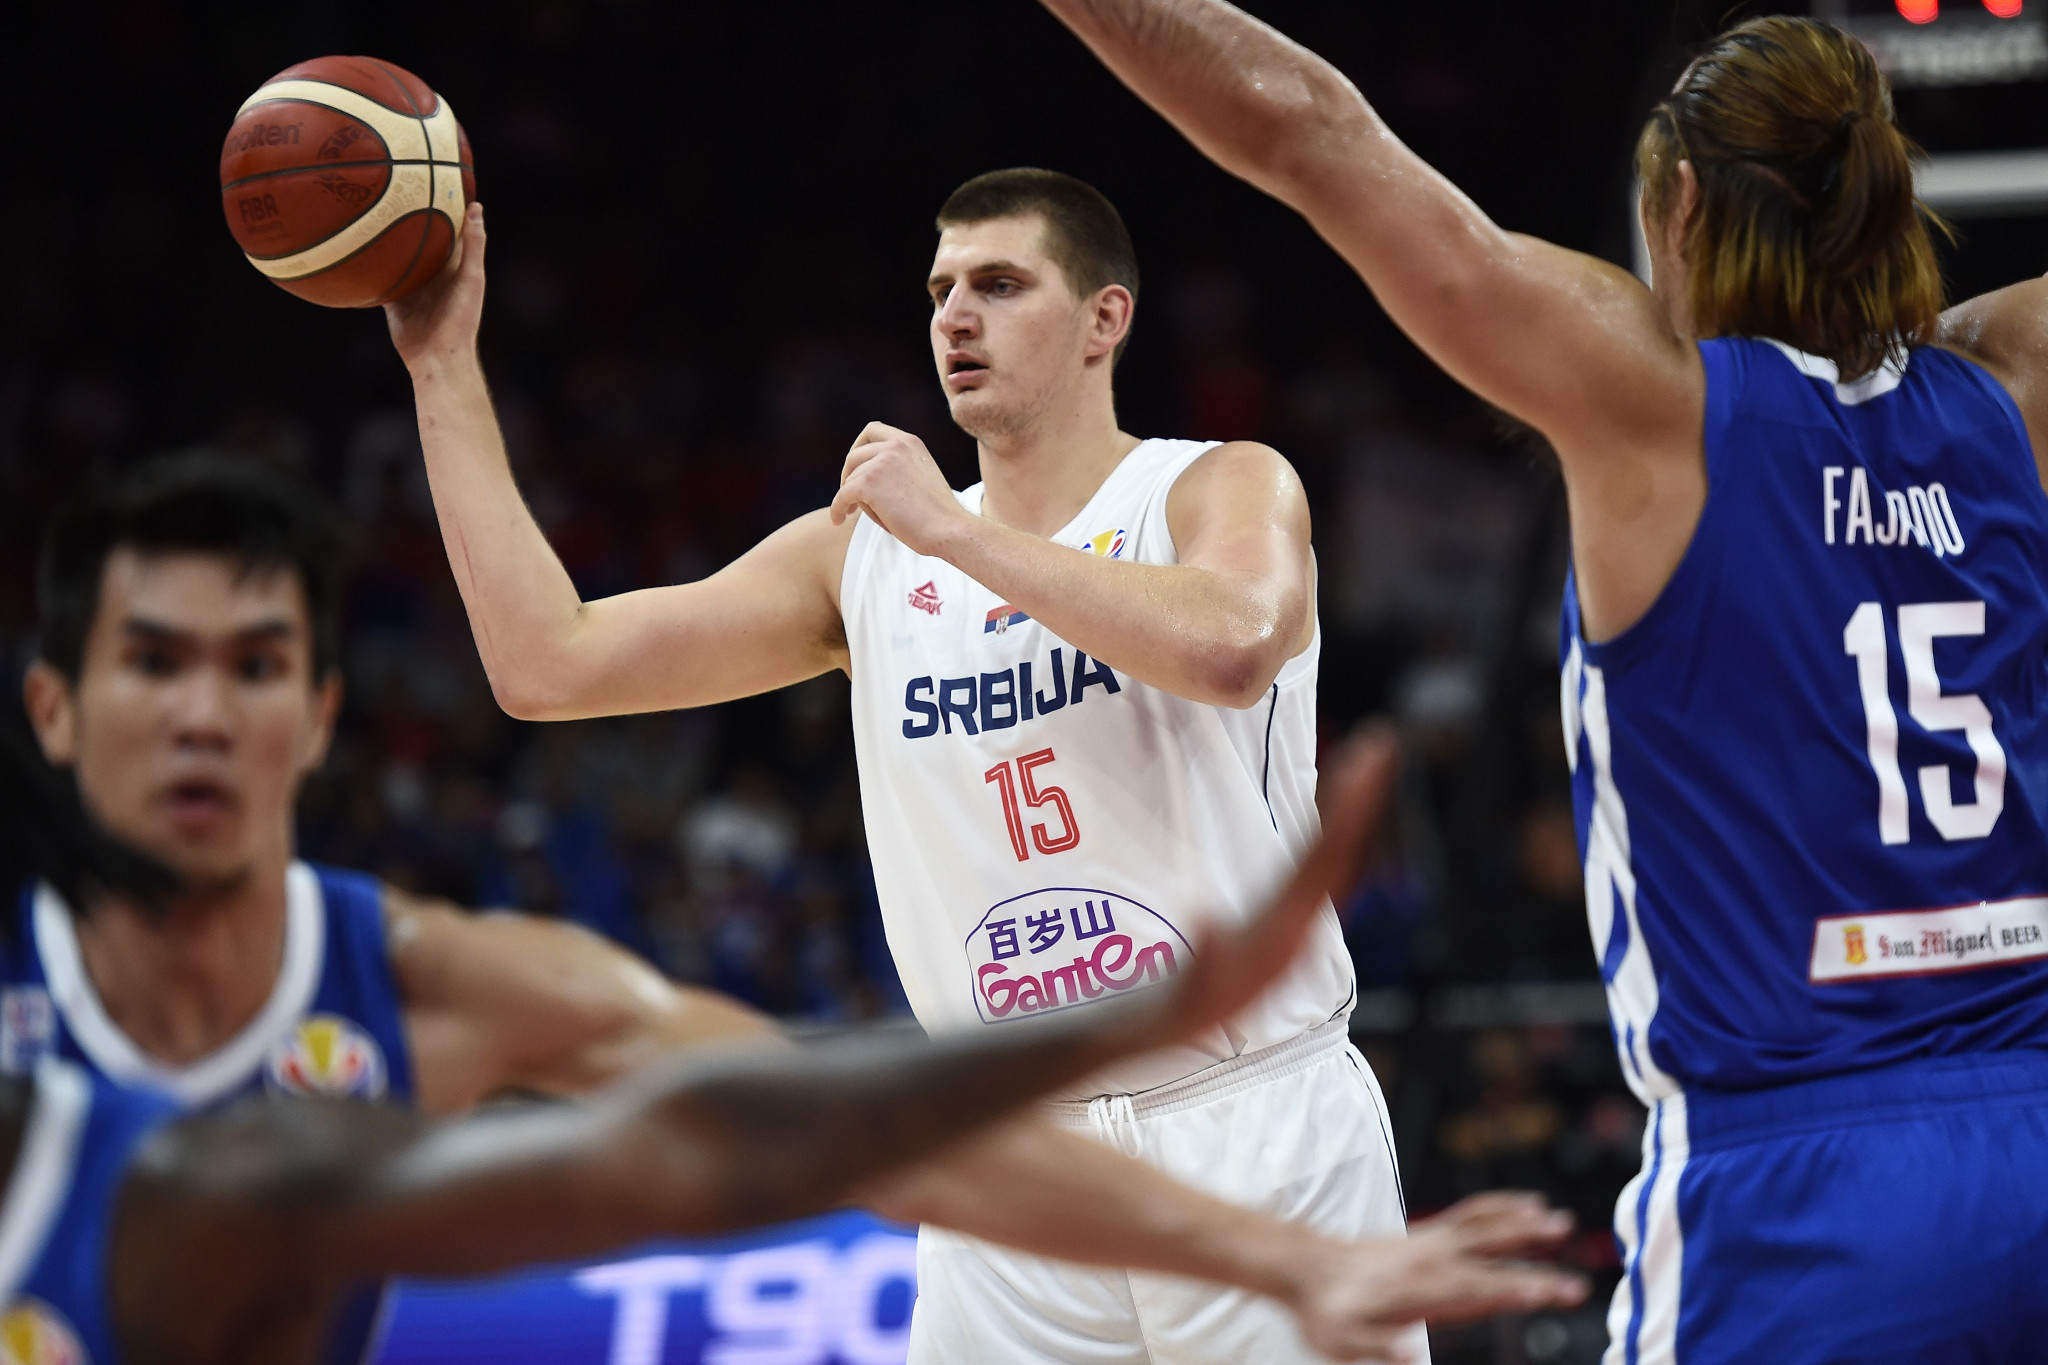 Six countries reach second phase on day three of FIBA World Cup